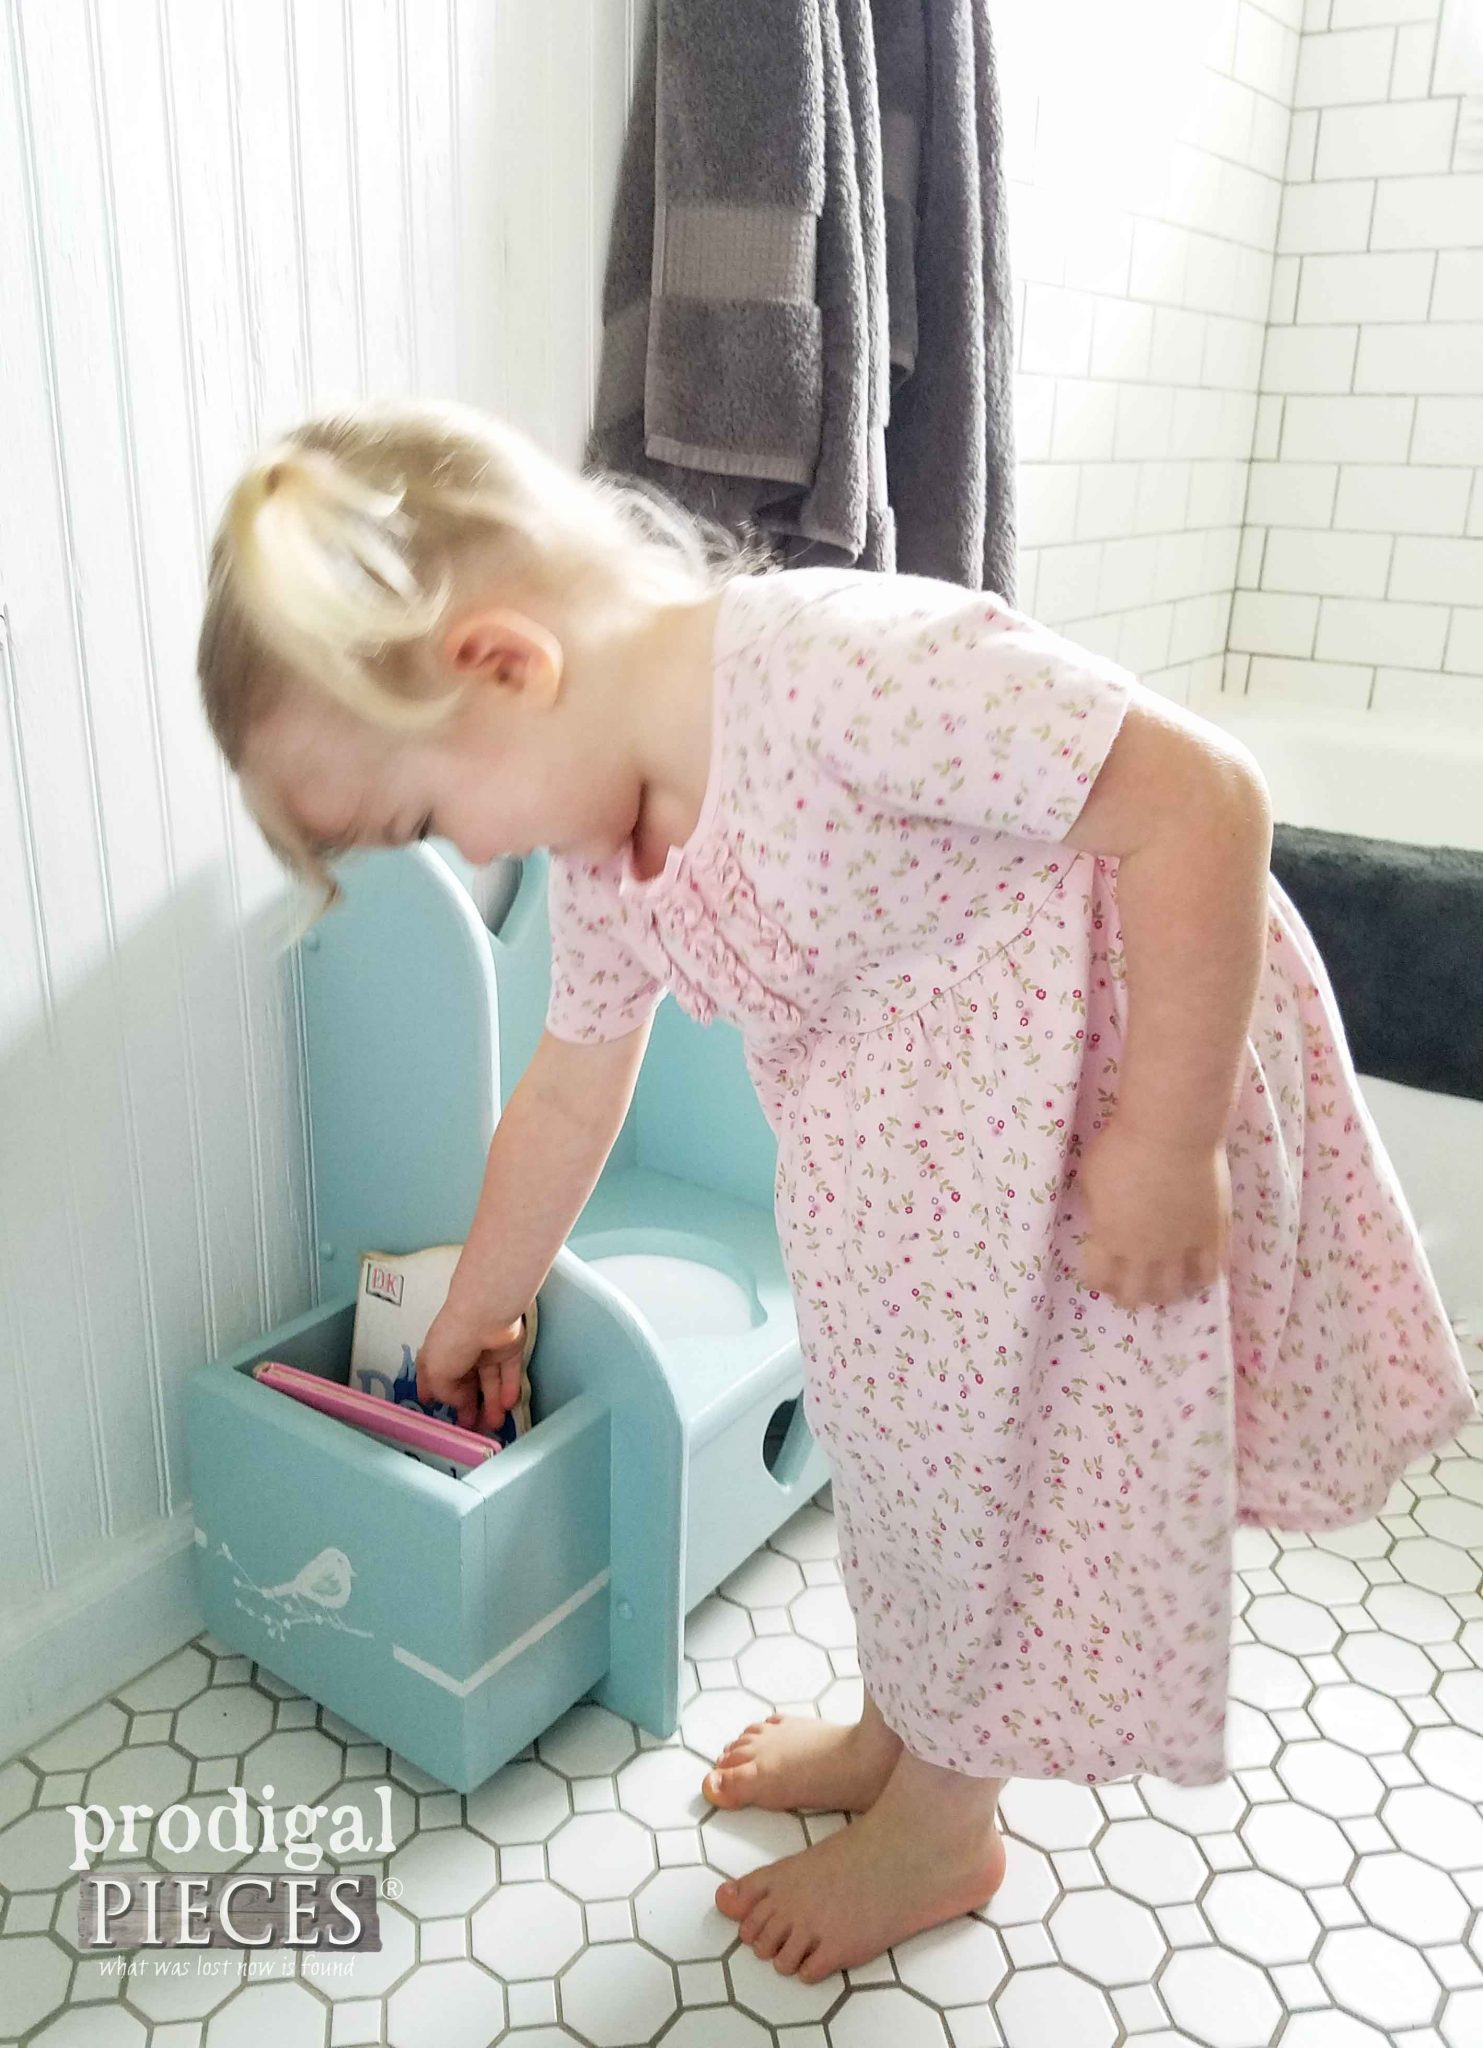 potty chair for girls chairs church sale makeover talking toddler style prodigal pieces